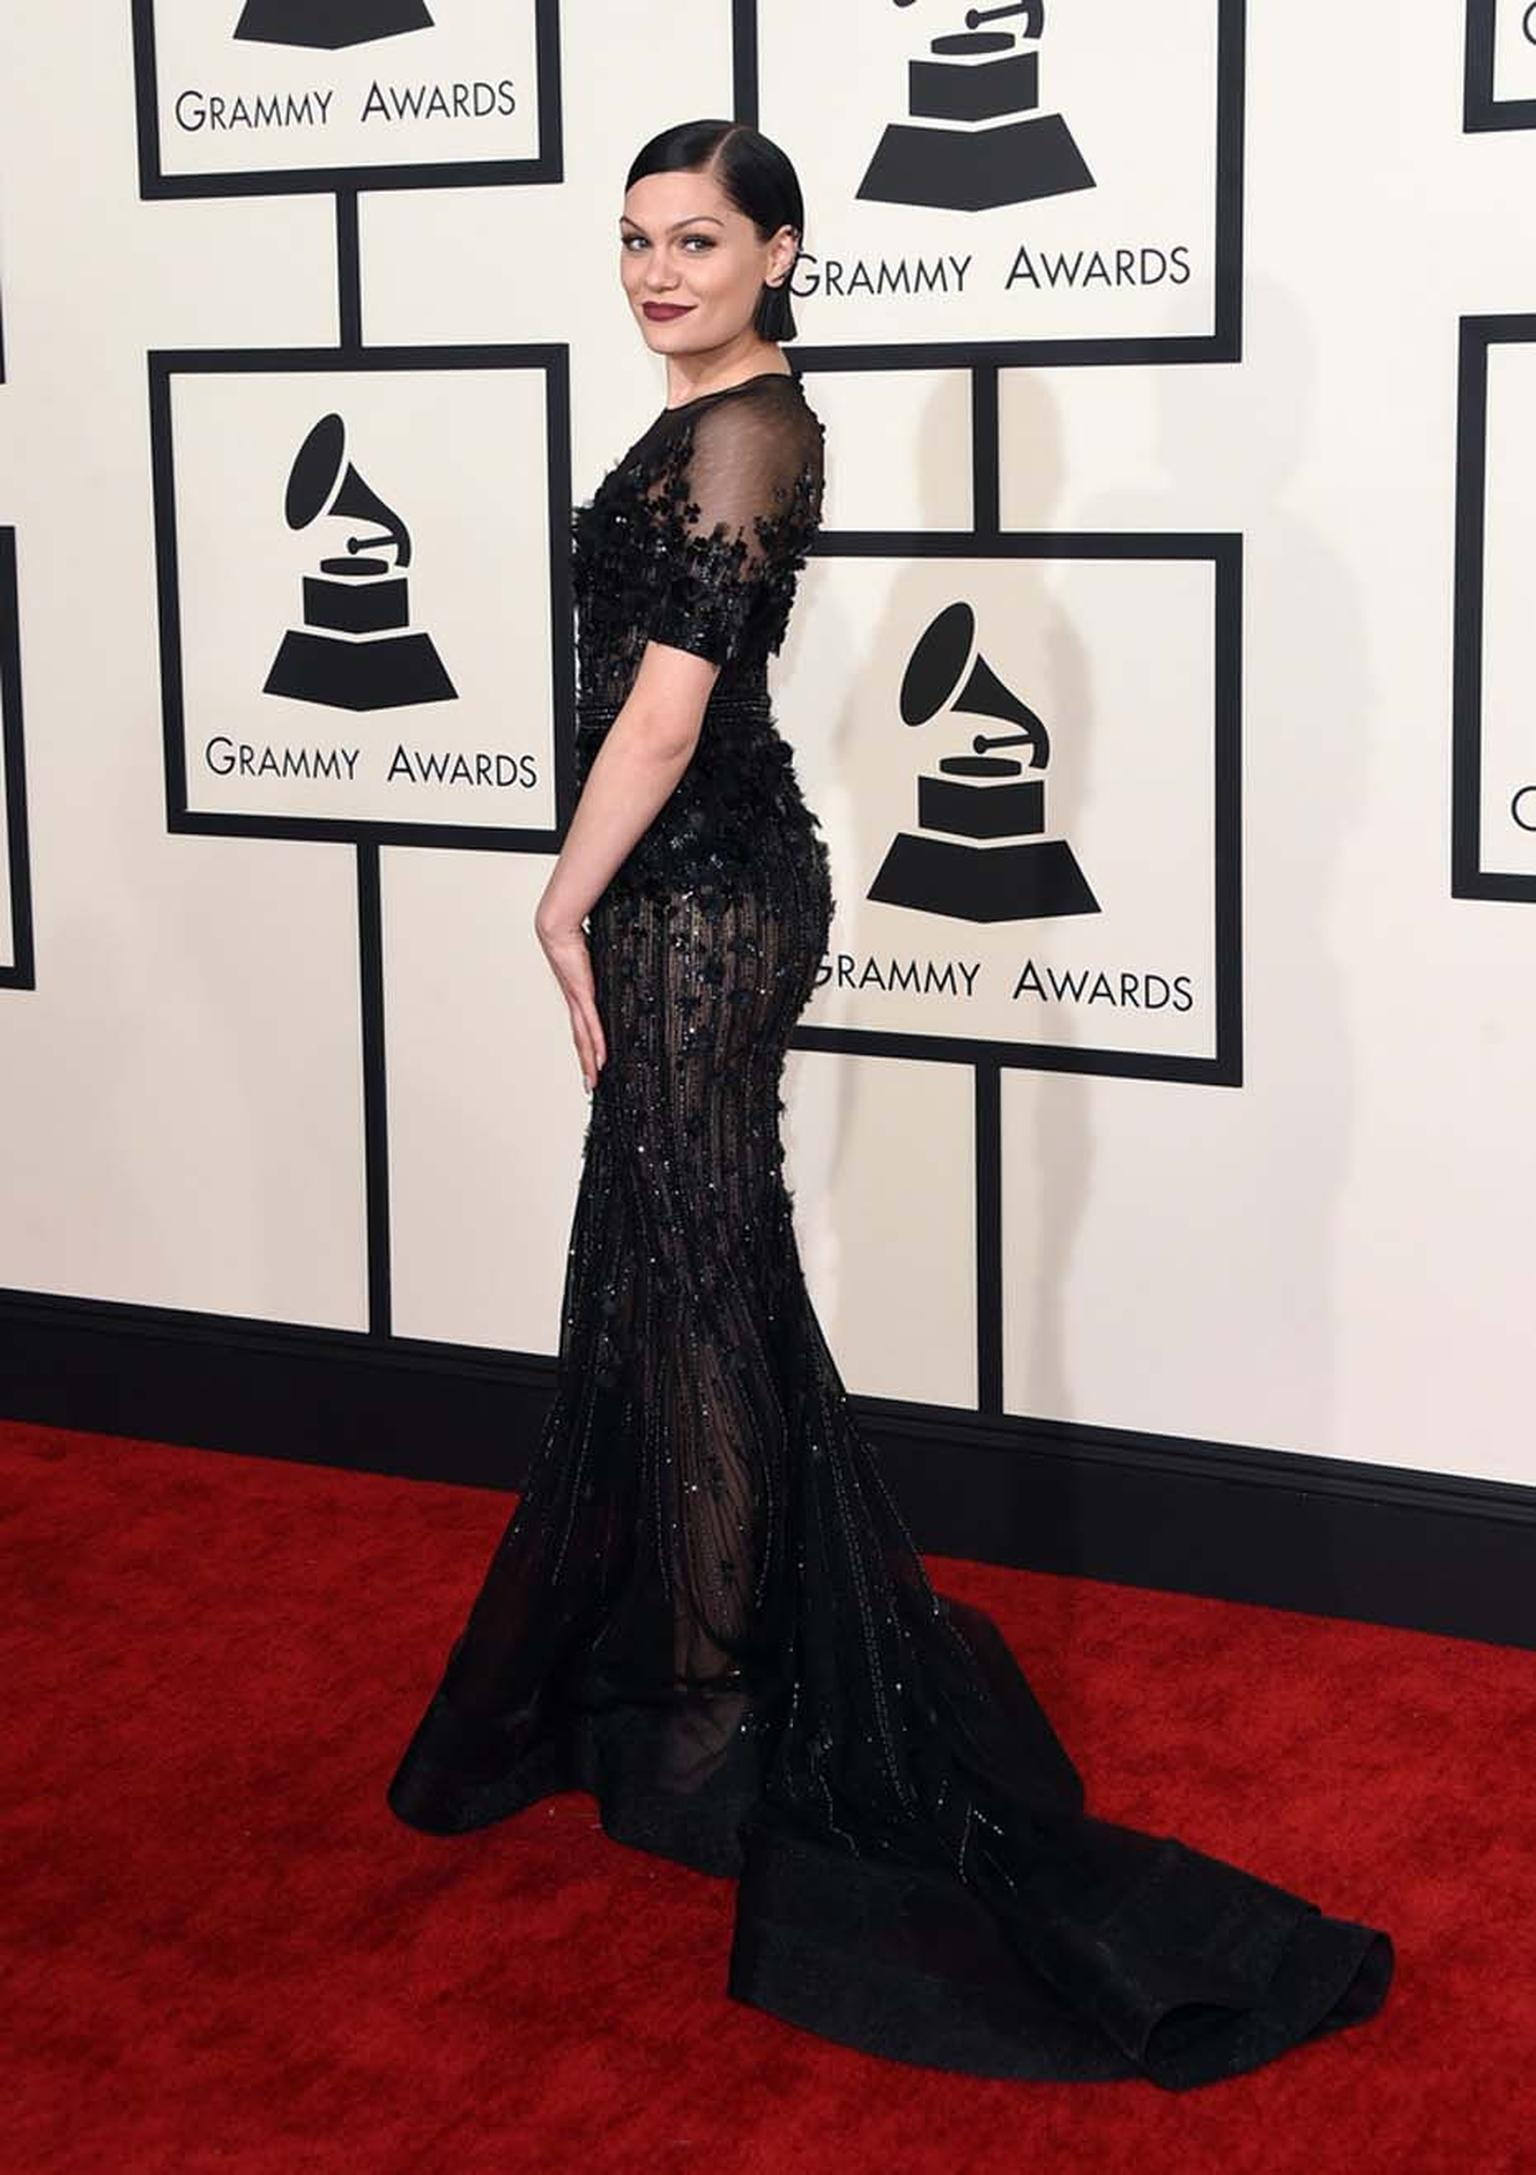 British singer Jessie J was on trend with her red carpet jewelry, accessorising her elegant black gown with a Sutra diamond and black gold ear cuff at the 57th Annual Grammy Awards in Los Angeles, California.